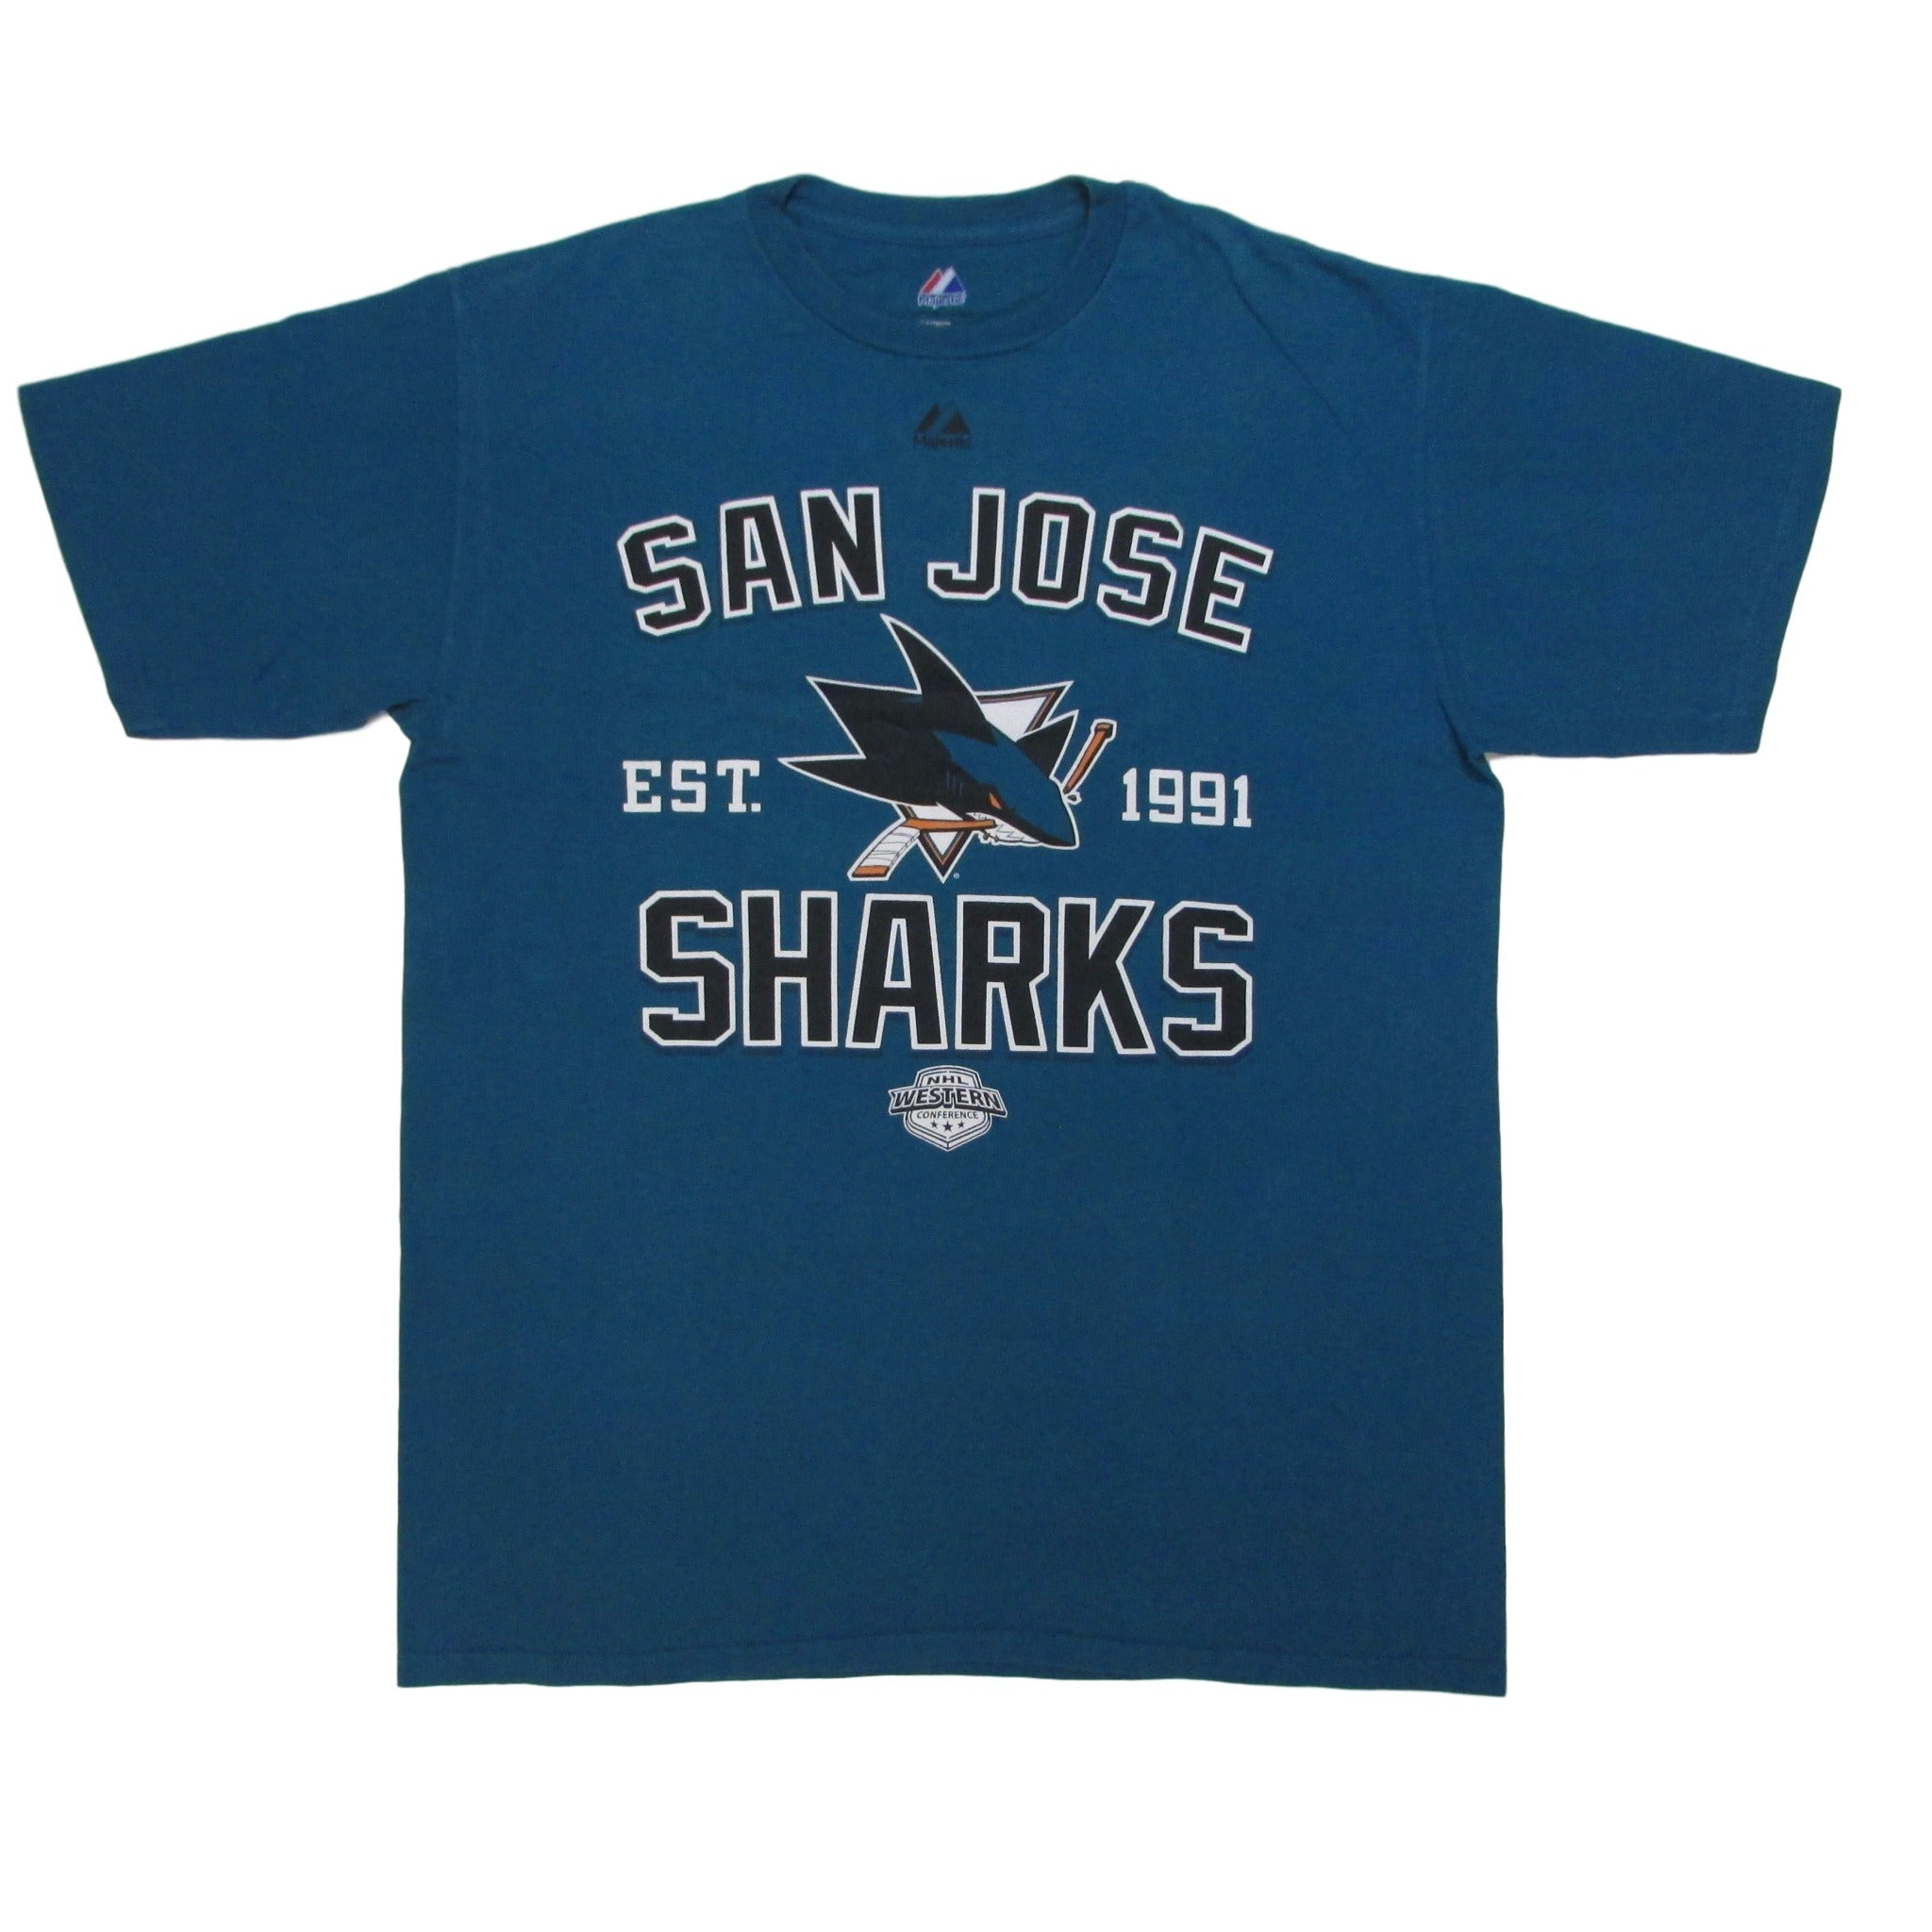 San Jose Sharks Est. 1991 Hockey T-Shirt Majestic Sz L